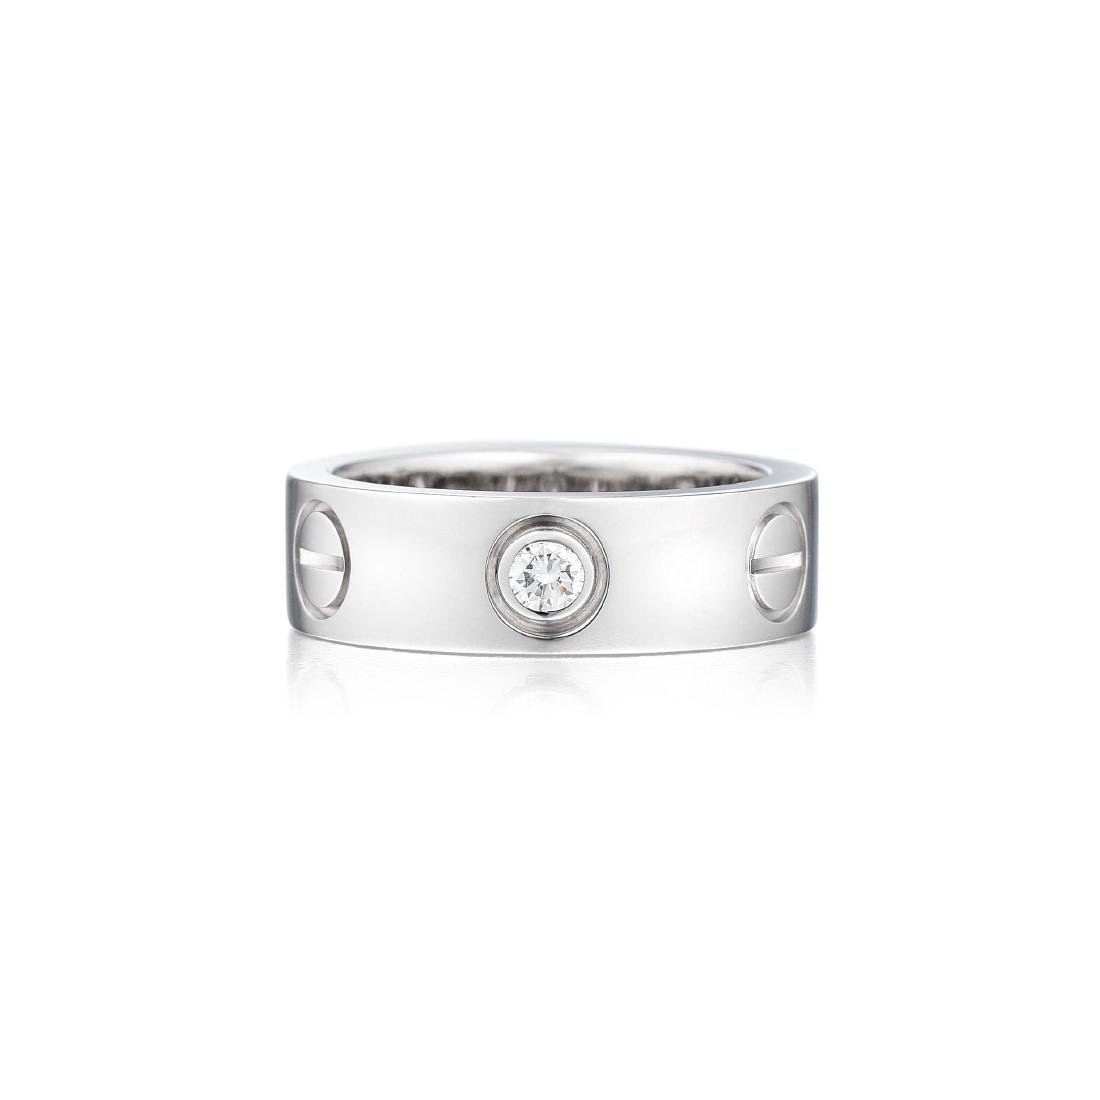 "Cartier ""Love"" 18K White Gold 3 Diamonds Ring"